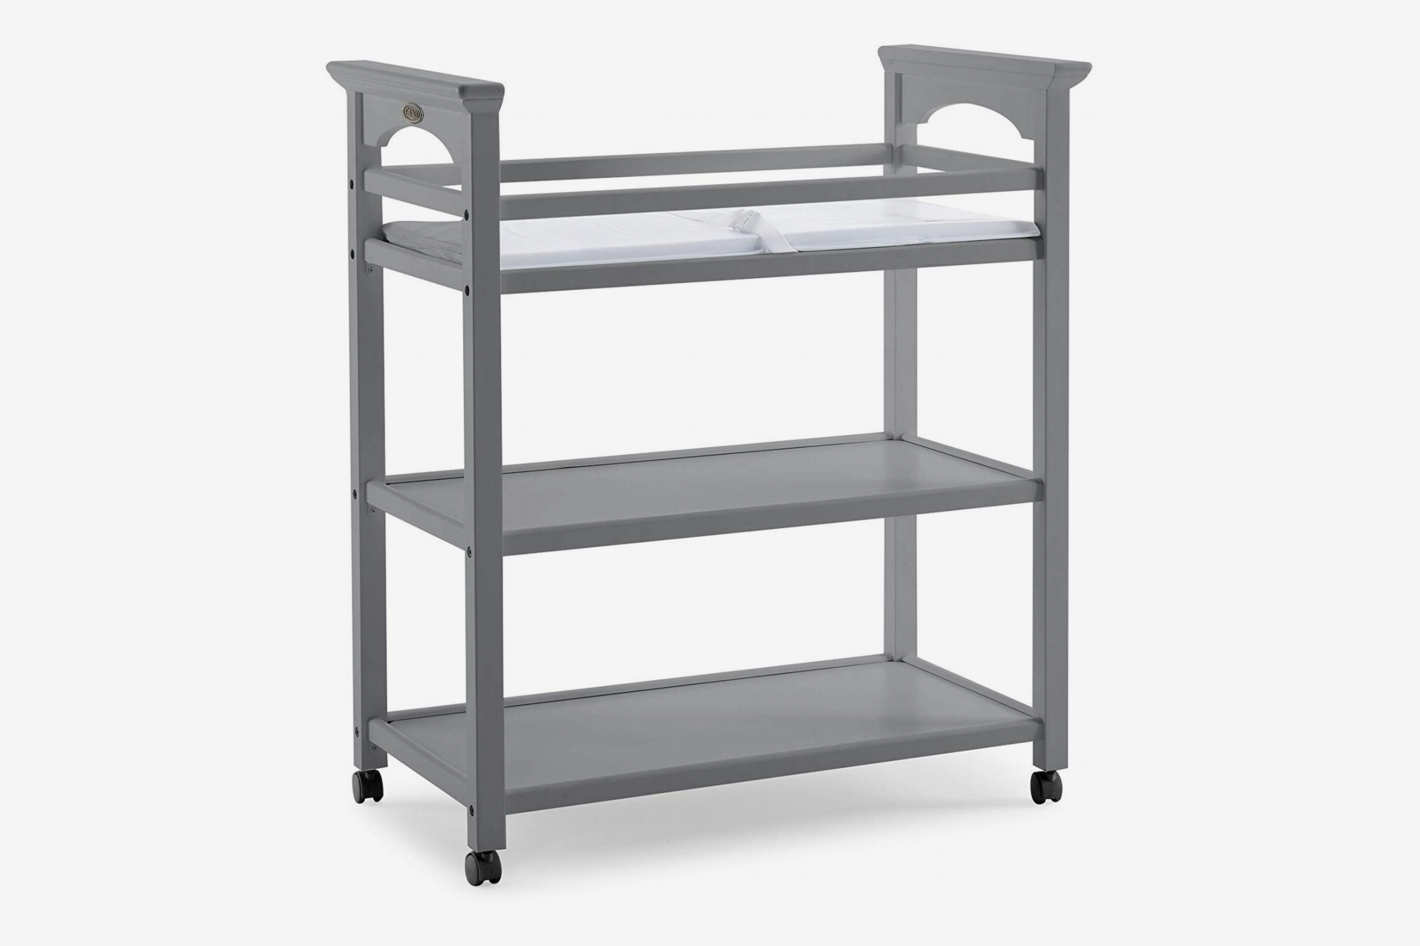 Graco Lauren Changing Table, Pebble Gray Changing Table